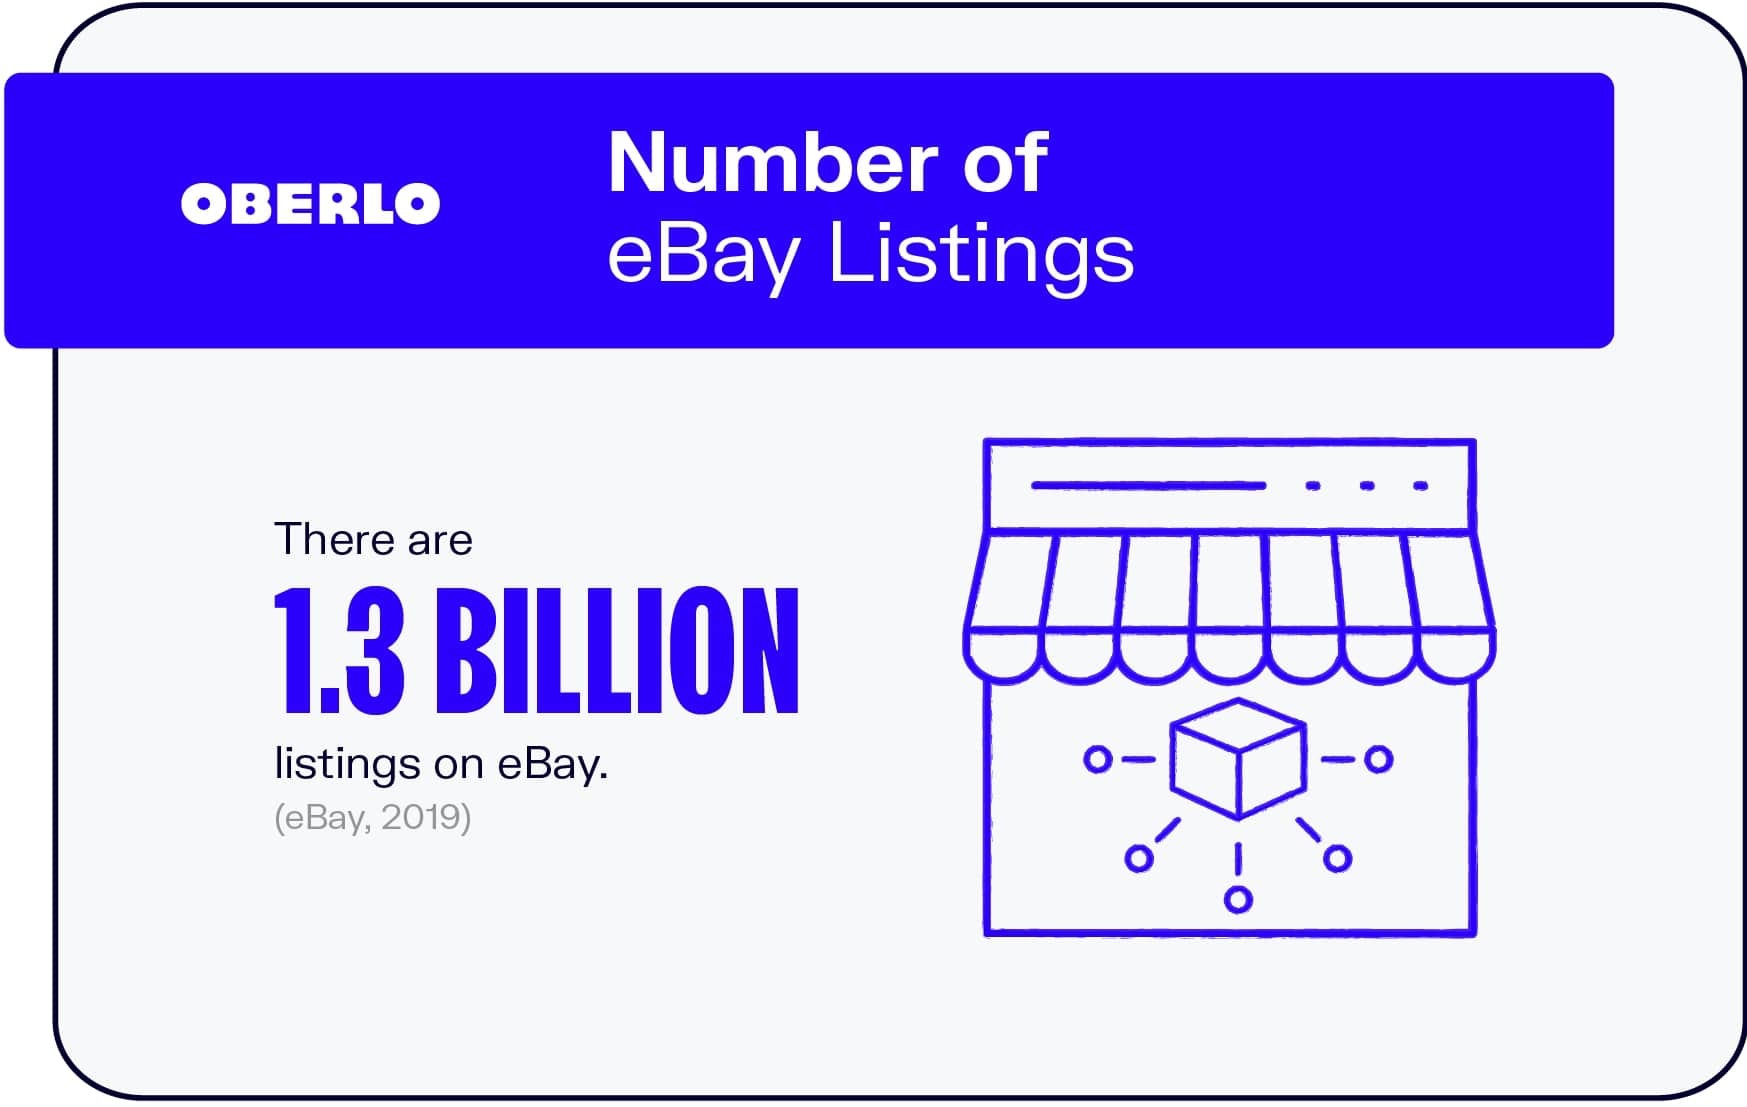 Number of eBay Listings